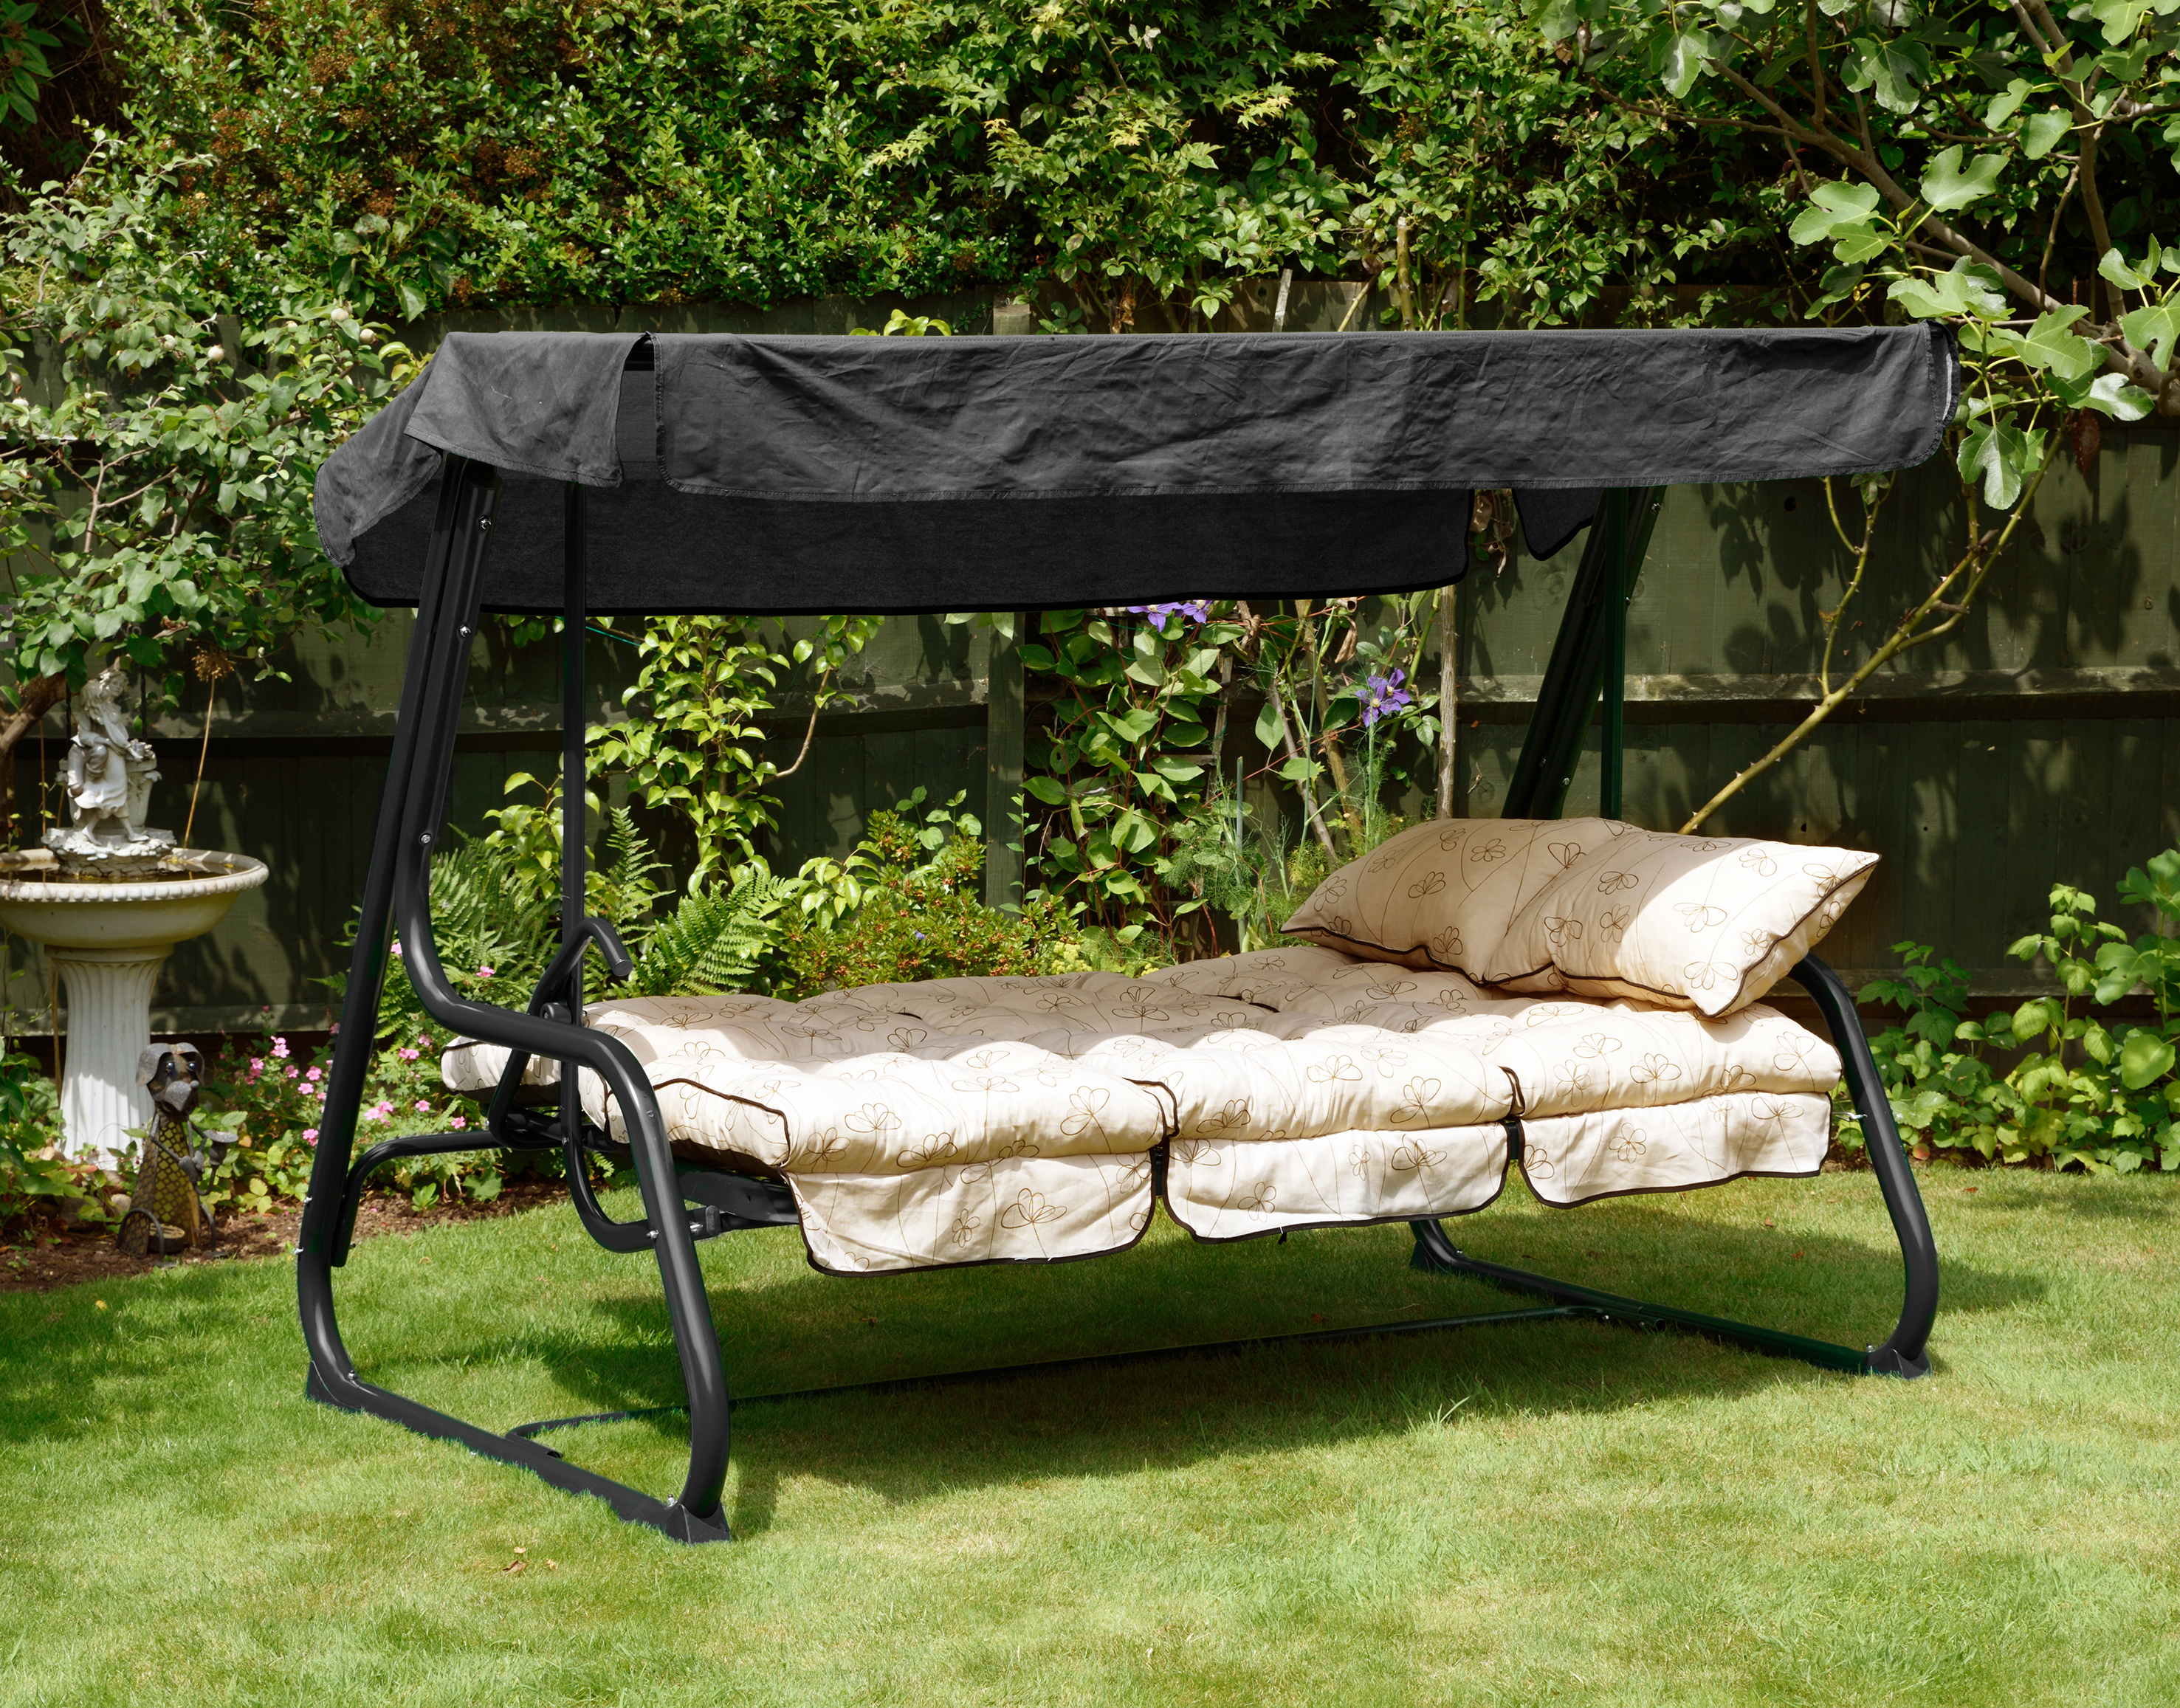 GL1119 NANCY NOIR PENDULUM HAMMOCK BED POSITION